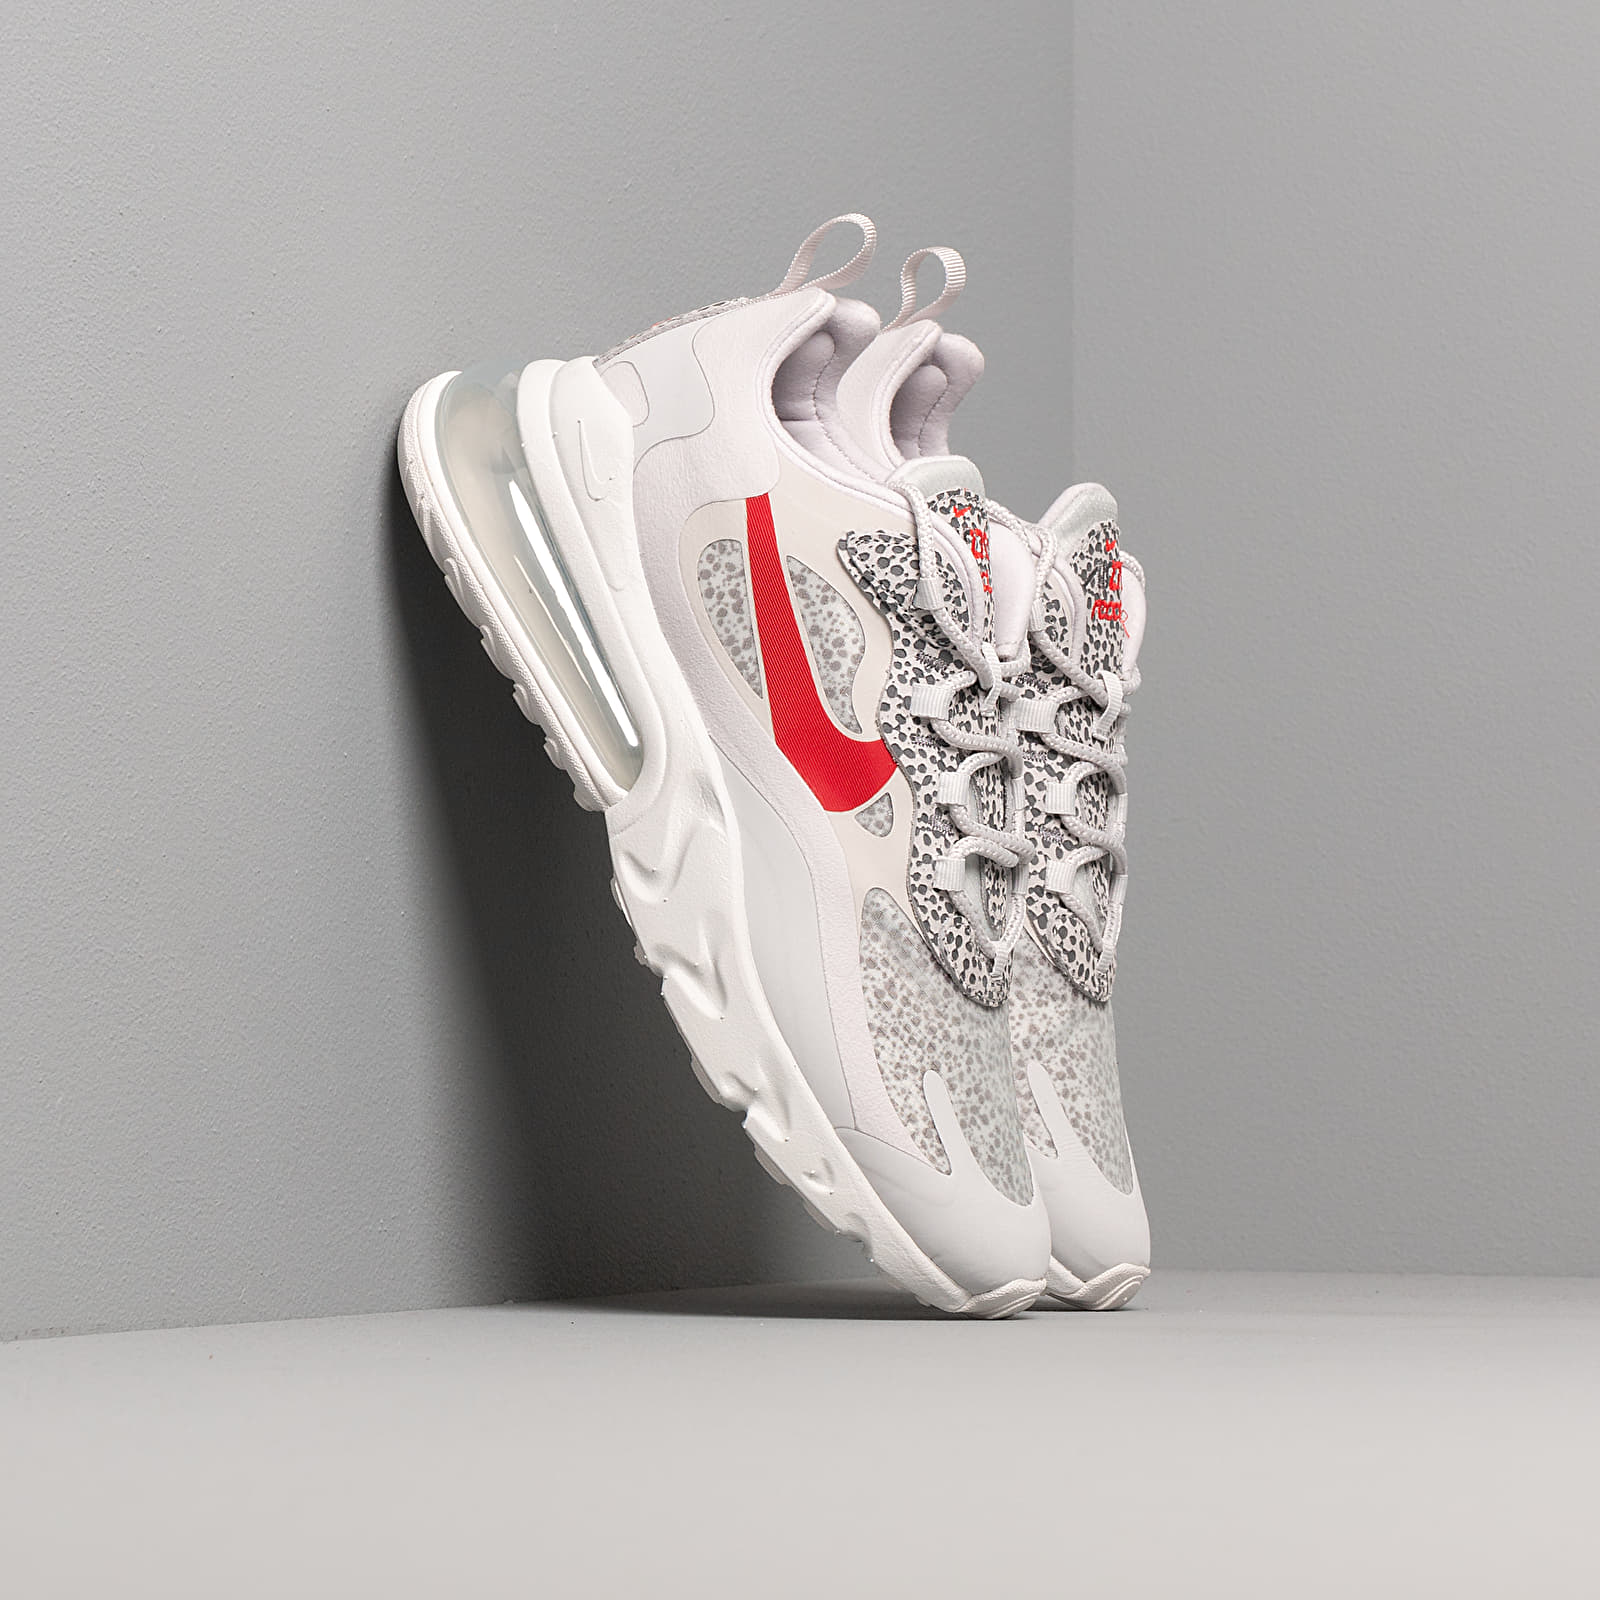 Zapatillas Hombre Nike Air Max 270 React Neutral Grey/ University Red-Lt Graphite